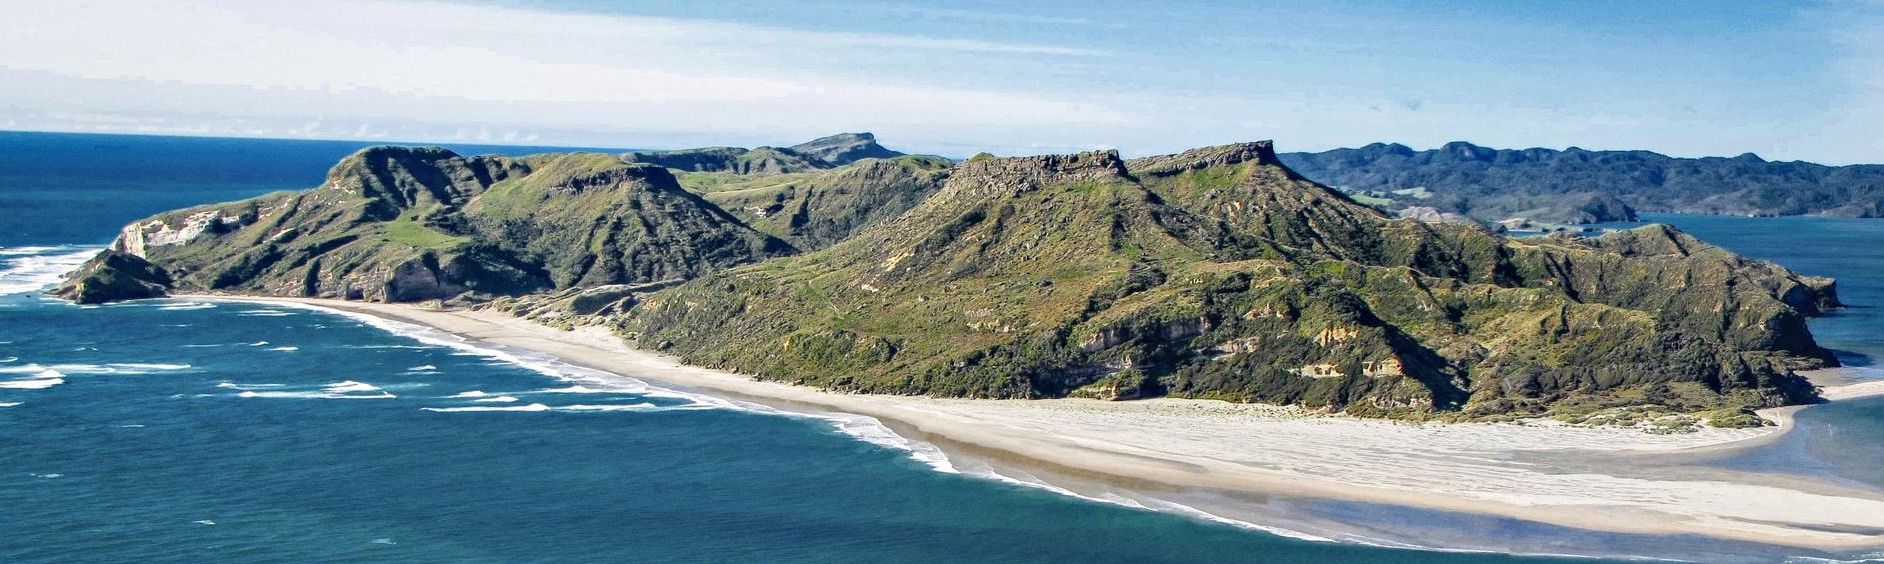 Ahipara luxury travel tourwriter